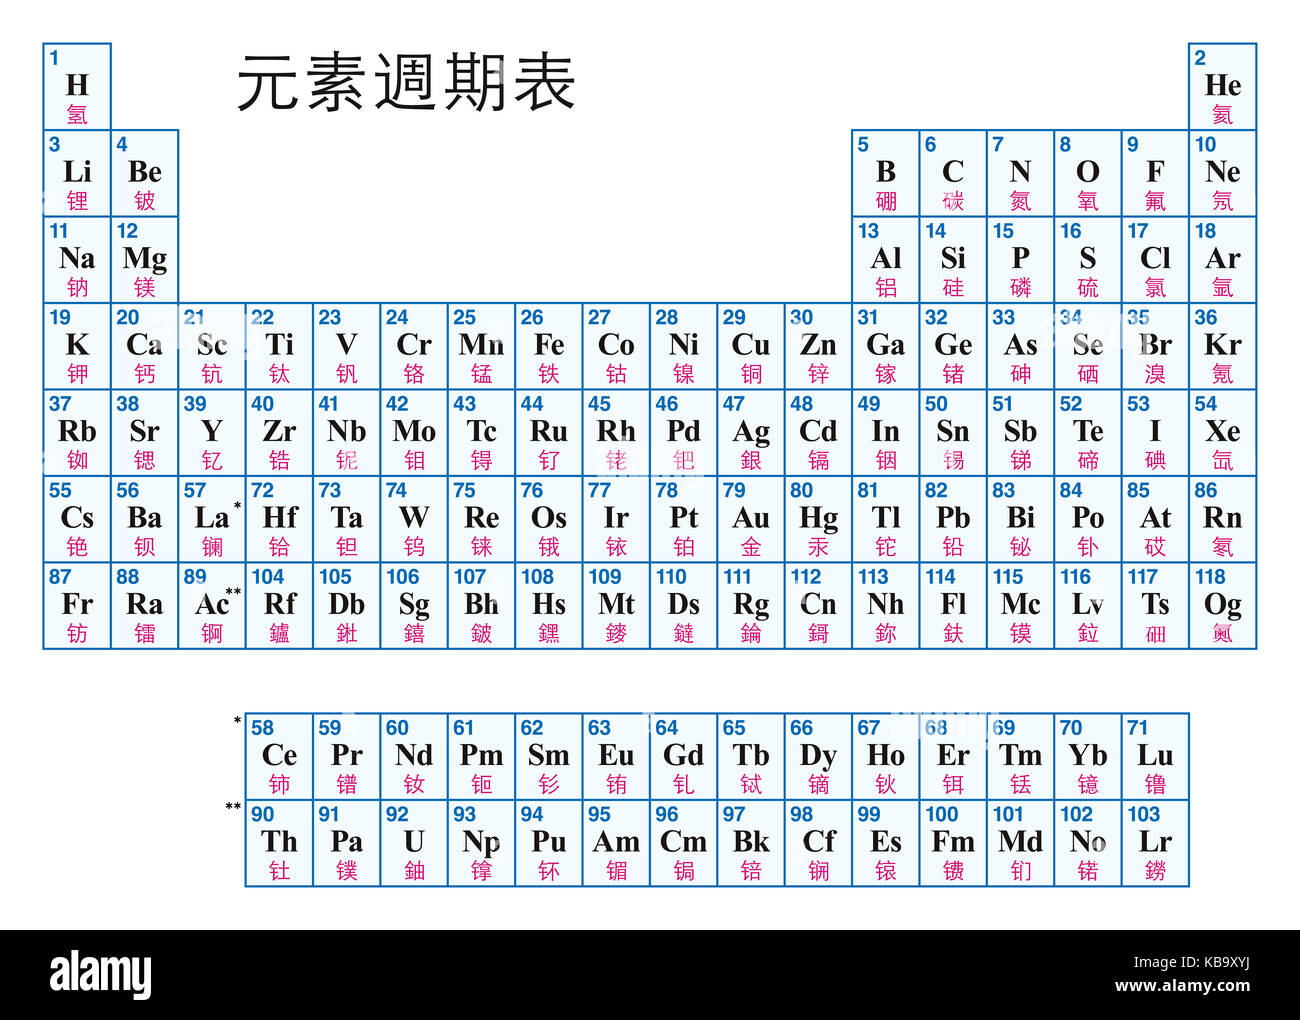 Periodic table of the elements chinese tabular arrangement of periodic table of the elements chinese tabular arrangement of chemical elements with their atomic numbers symbols and names 118 confirmed elements urtaz Image collections